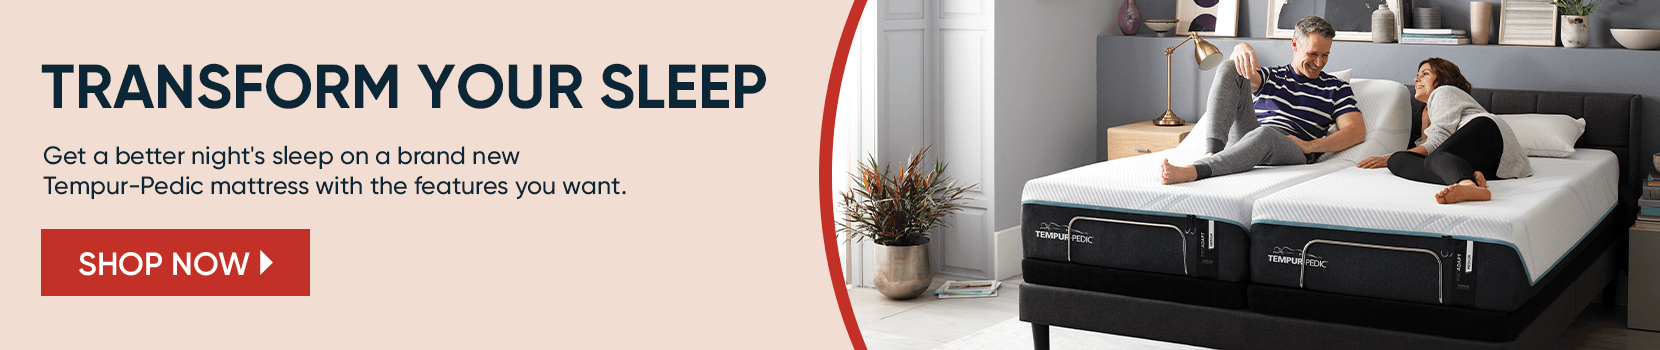 transform your sleep. get a better night's sleep on brand new tempurpedic mattresses with the features you want. shop now